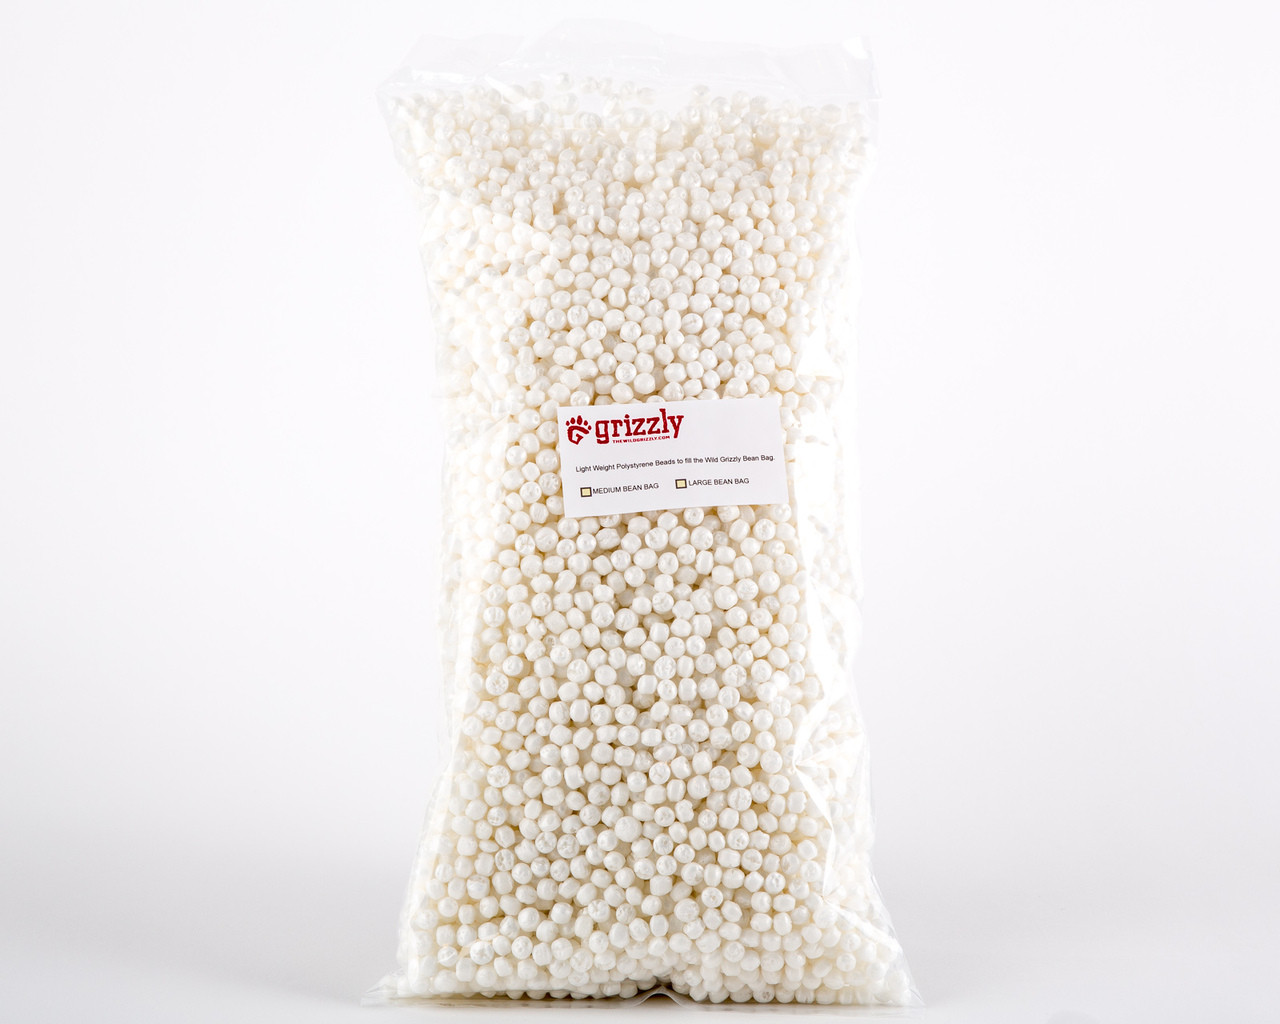 Grizzly Camera Bean Bag Polystyrene Fill Beads Large